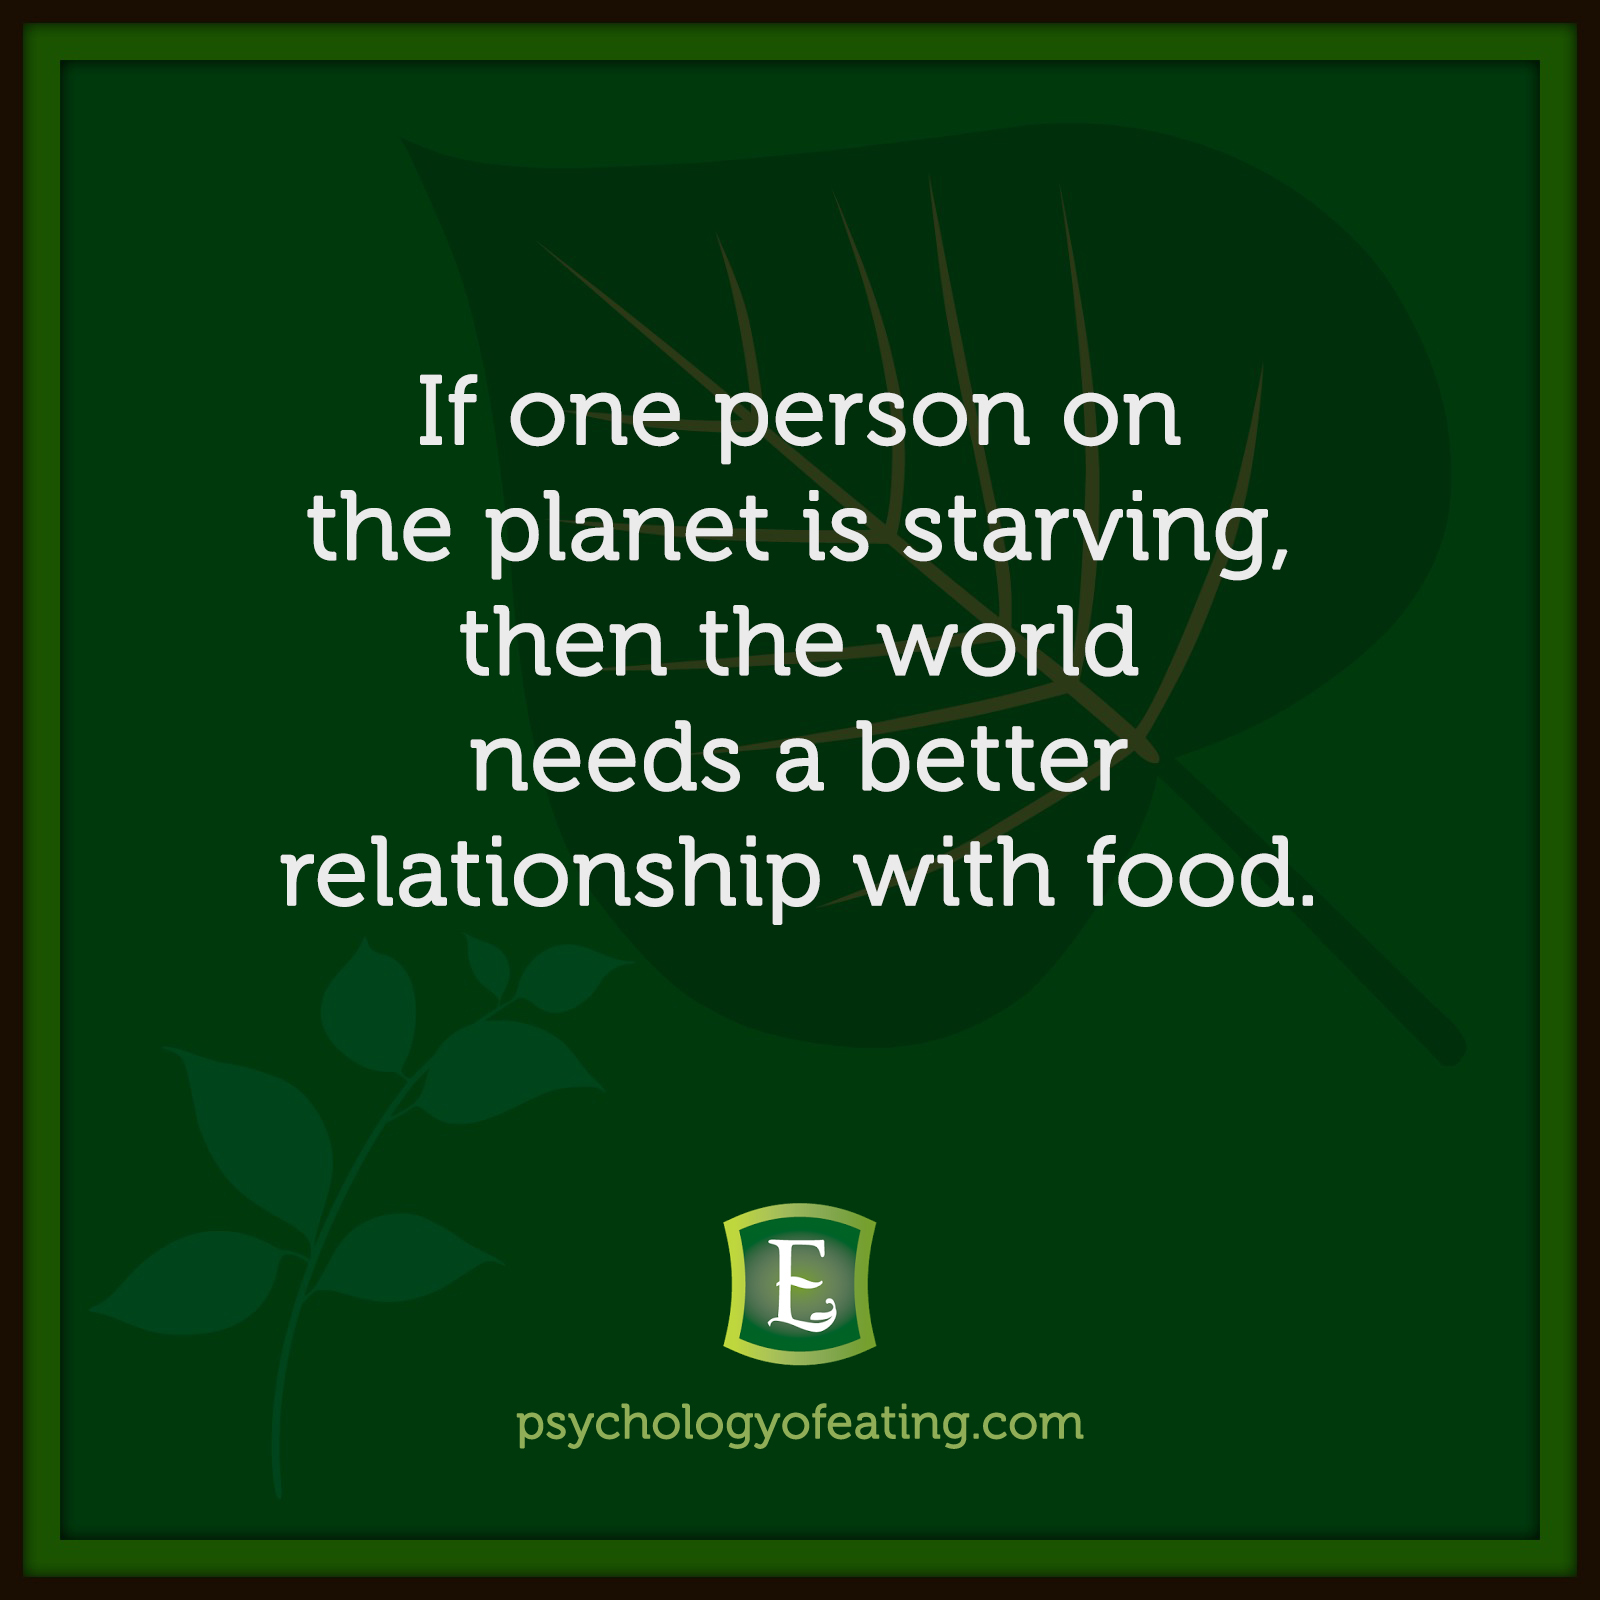 If one person on the planet is starving, then the world needs a better relationship with food. #health #nutrition #eatingpsychology #IPE